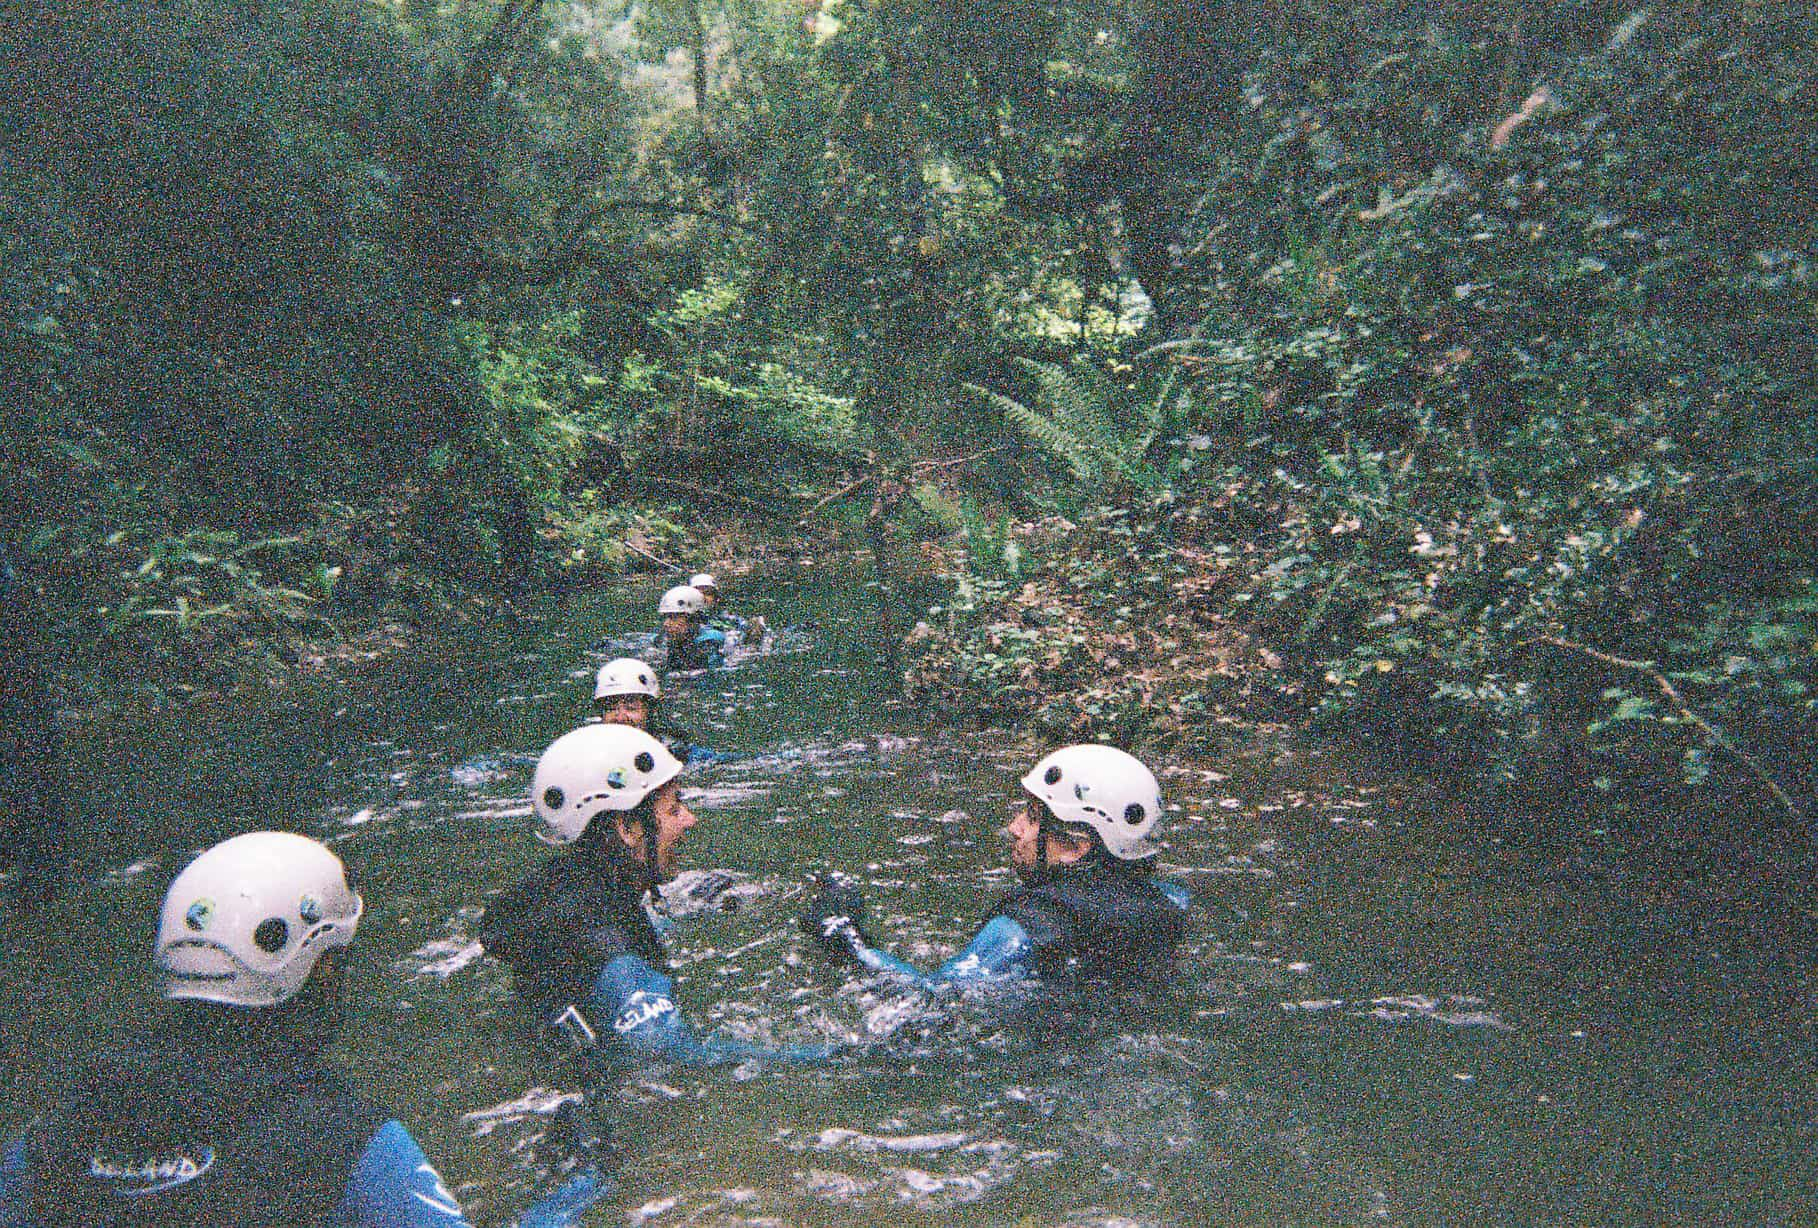 Water Trekking and shooting with a disposable camera